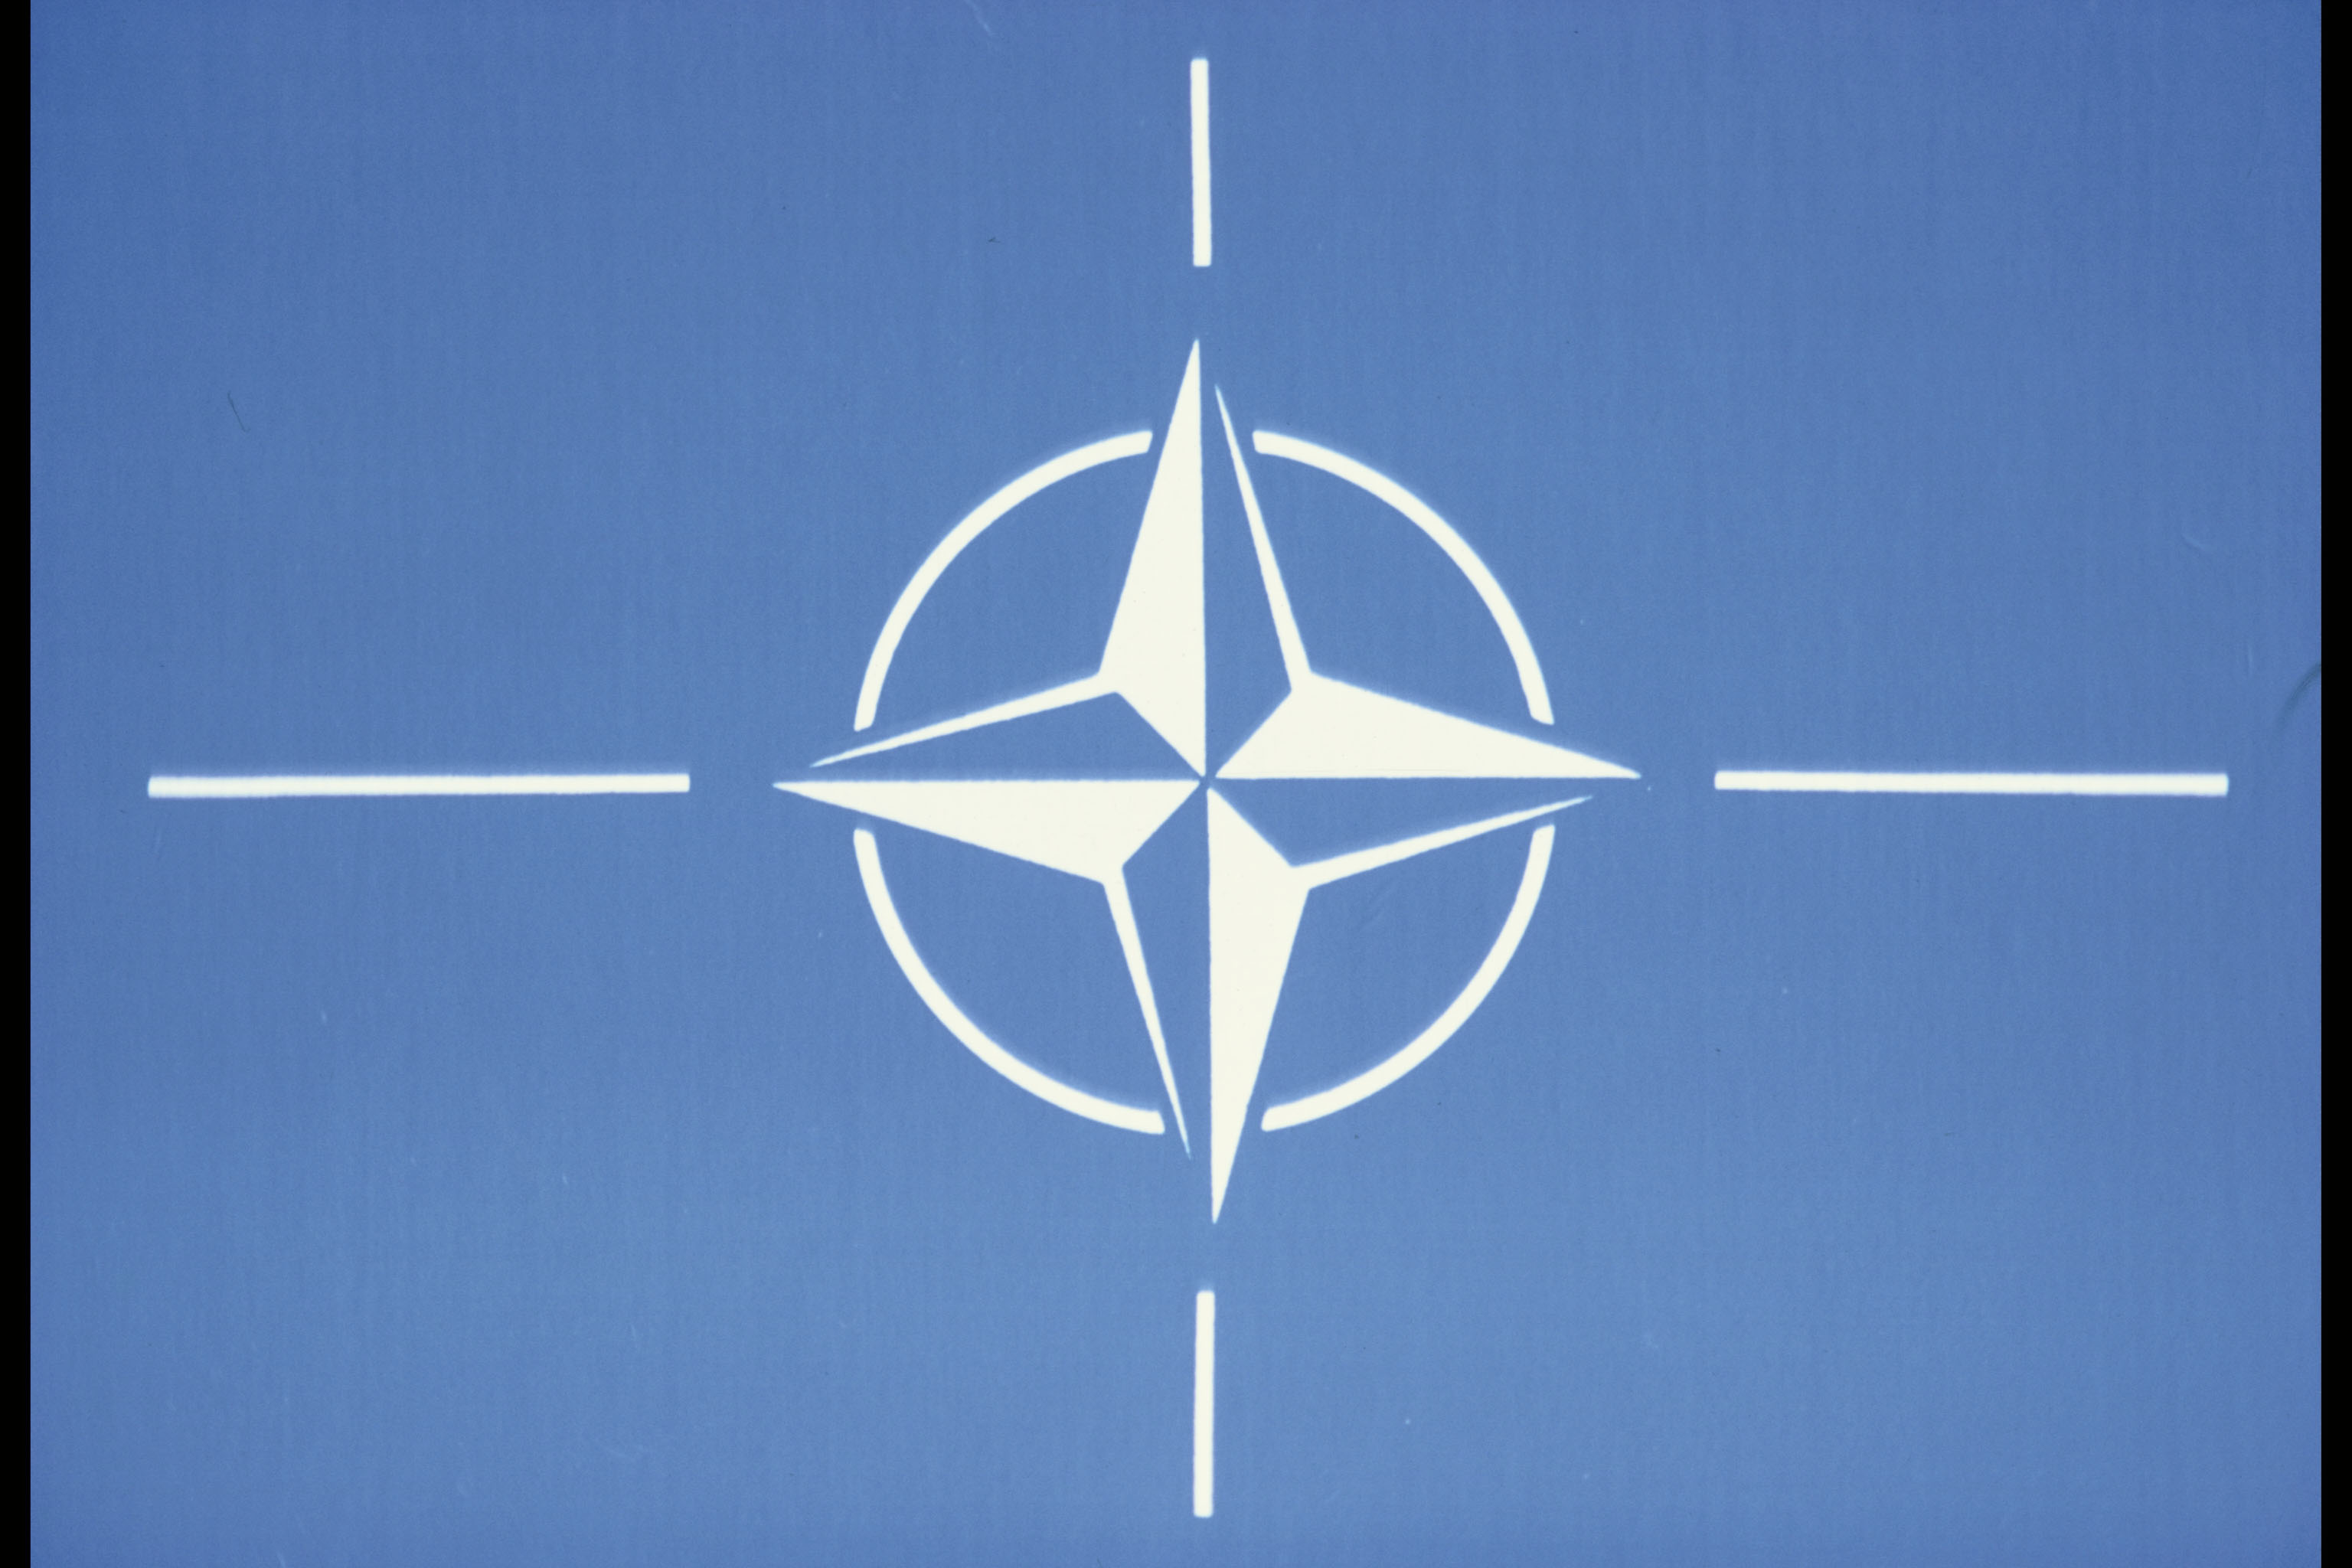 http://www.nato.int/pictures/database/large/b00840.jpg